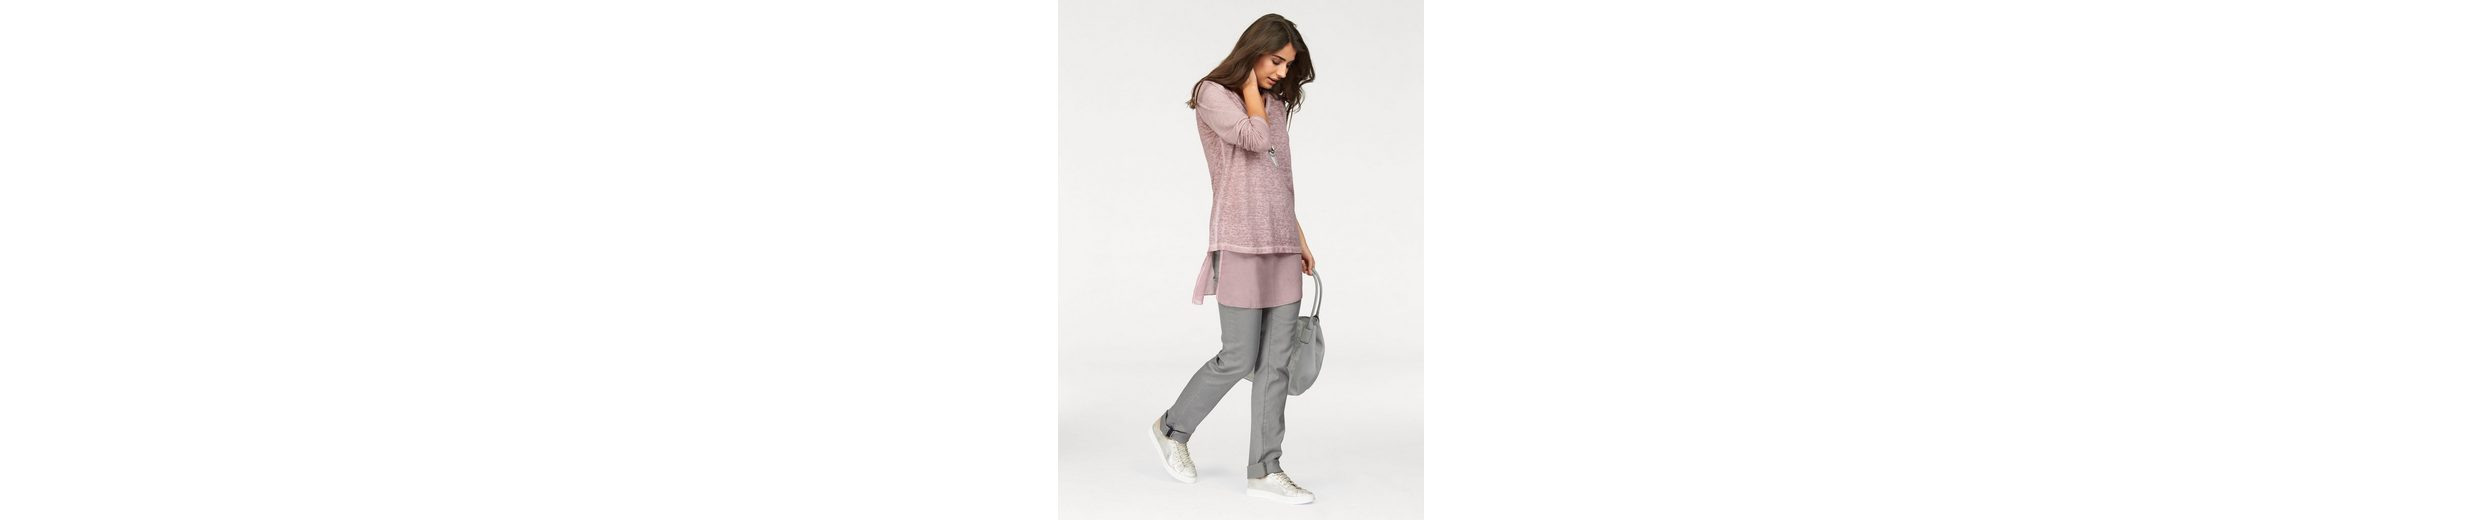 Boysen's Longshirt (Set, mit Top), im Lagen-Look mit Pailletten